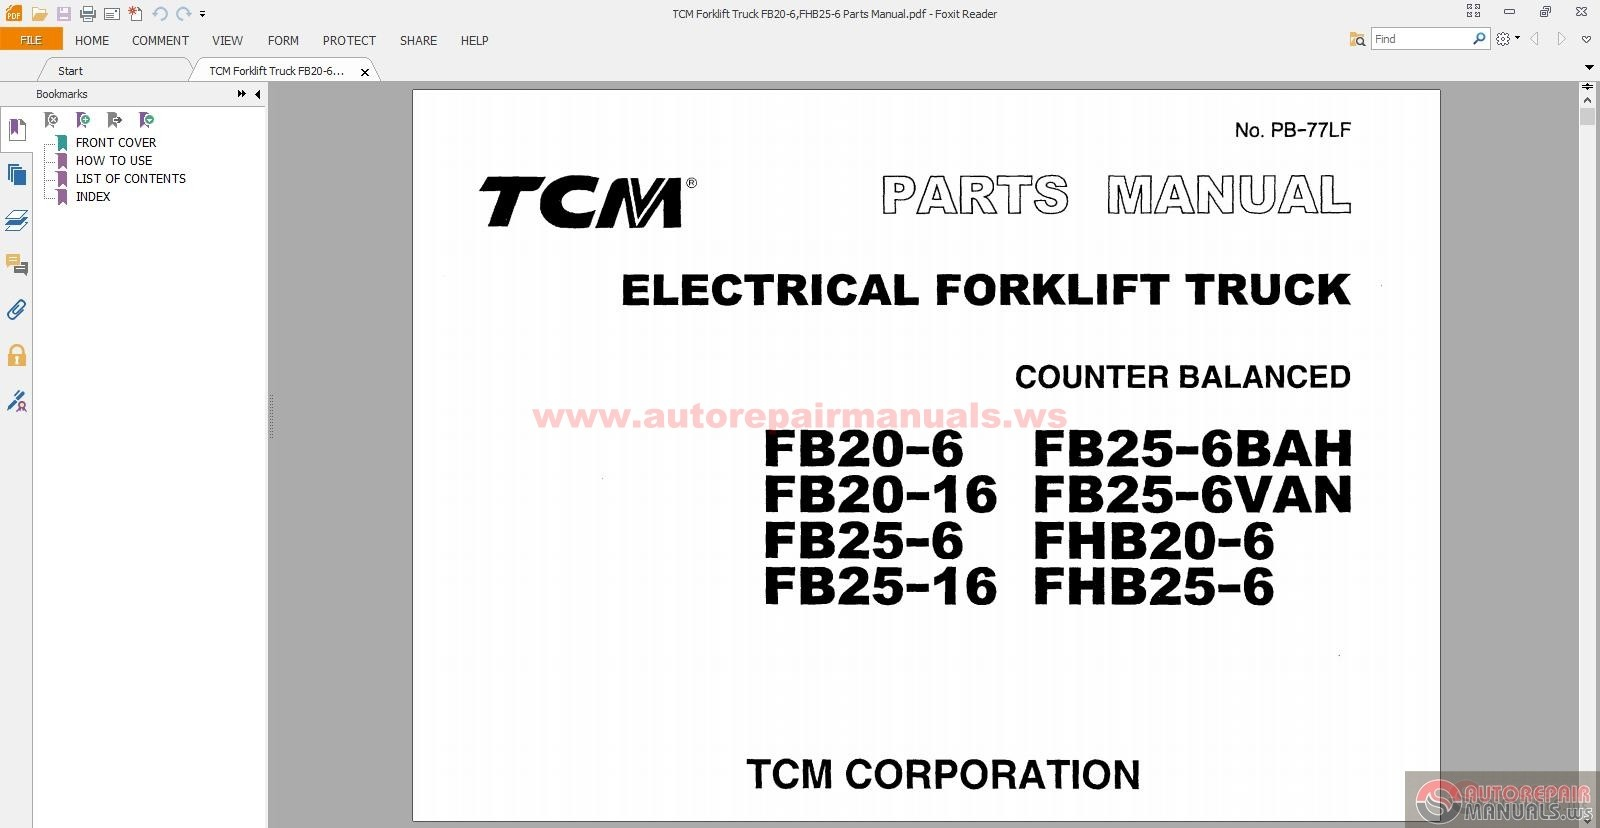 Mitsubishi Forklift Wiring Diagrams Tcm Diagram Free For You Fuse Box Location Library Rh 46 Codingcommunity De Nissan Parts